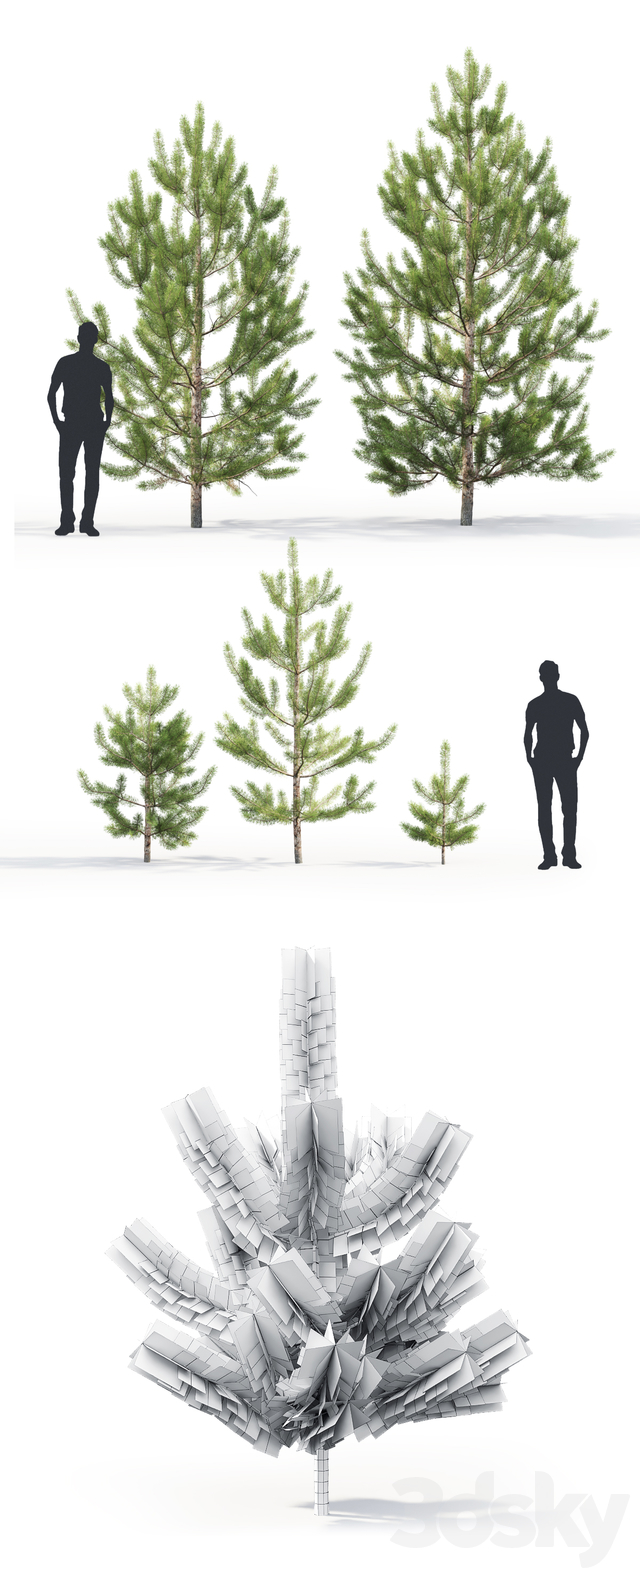 Pine ordinary young # 2 (1-4.3m)